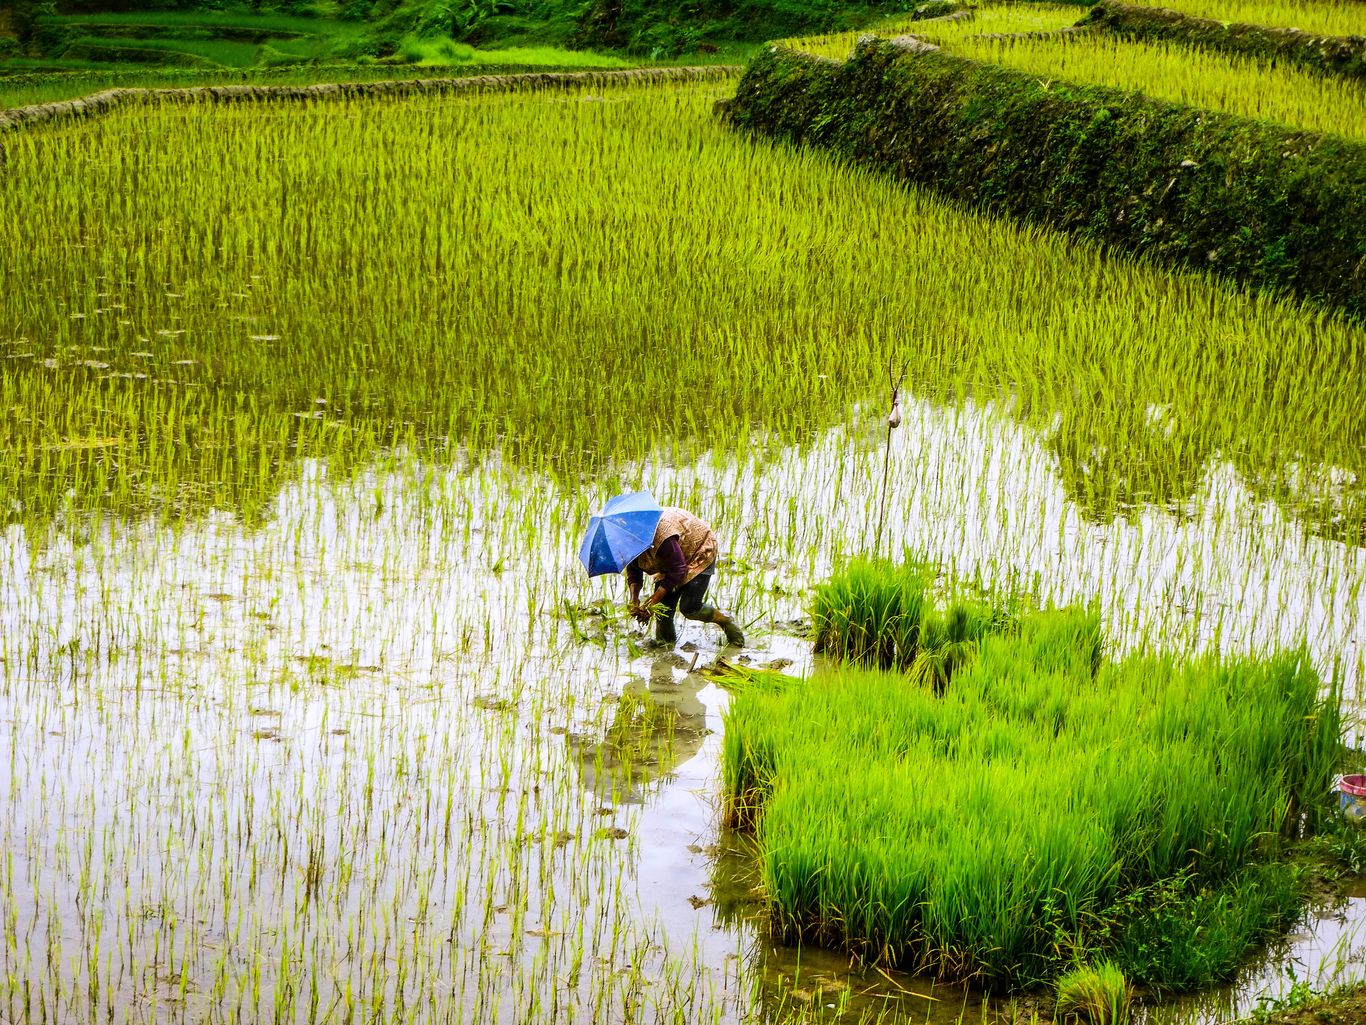 A farmer plants rice on a terraced paddy field that is part of the Rice Terraces of the Philippine Cordilleras, one of the UNESCO World Heritage Sites in the Philippines